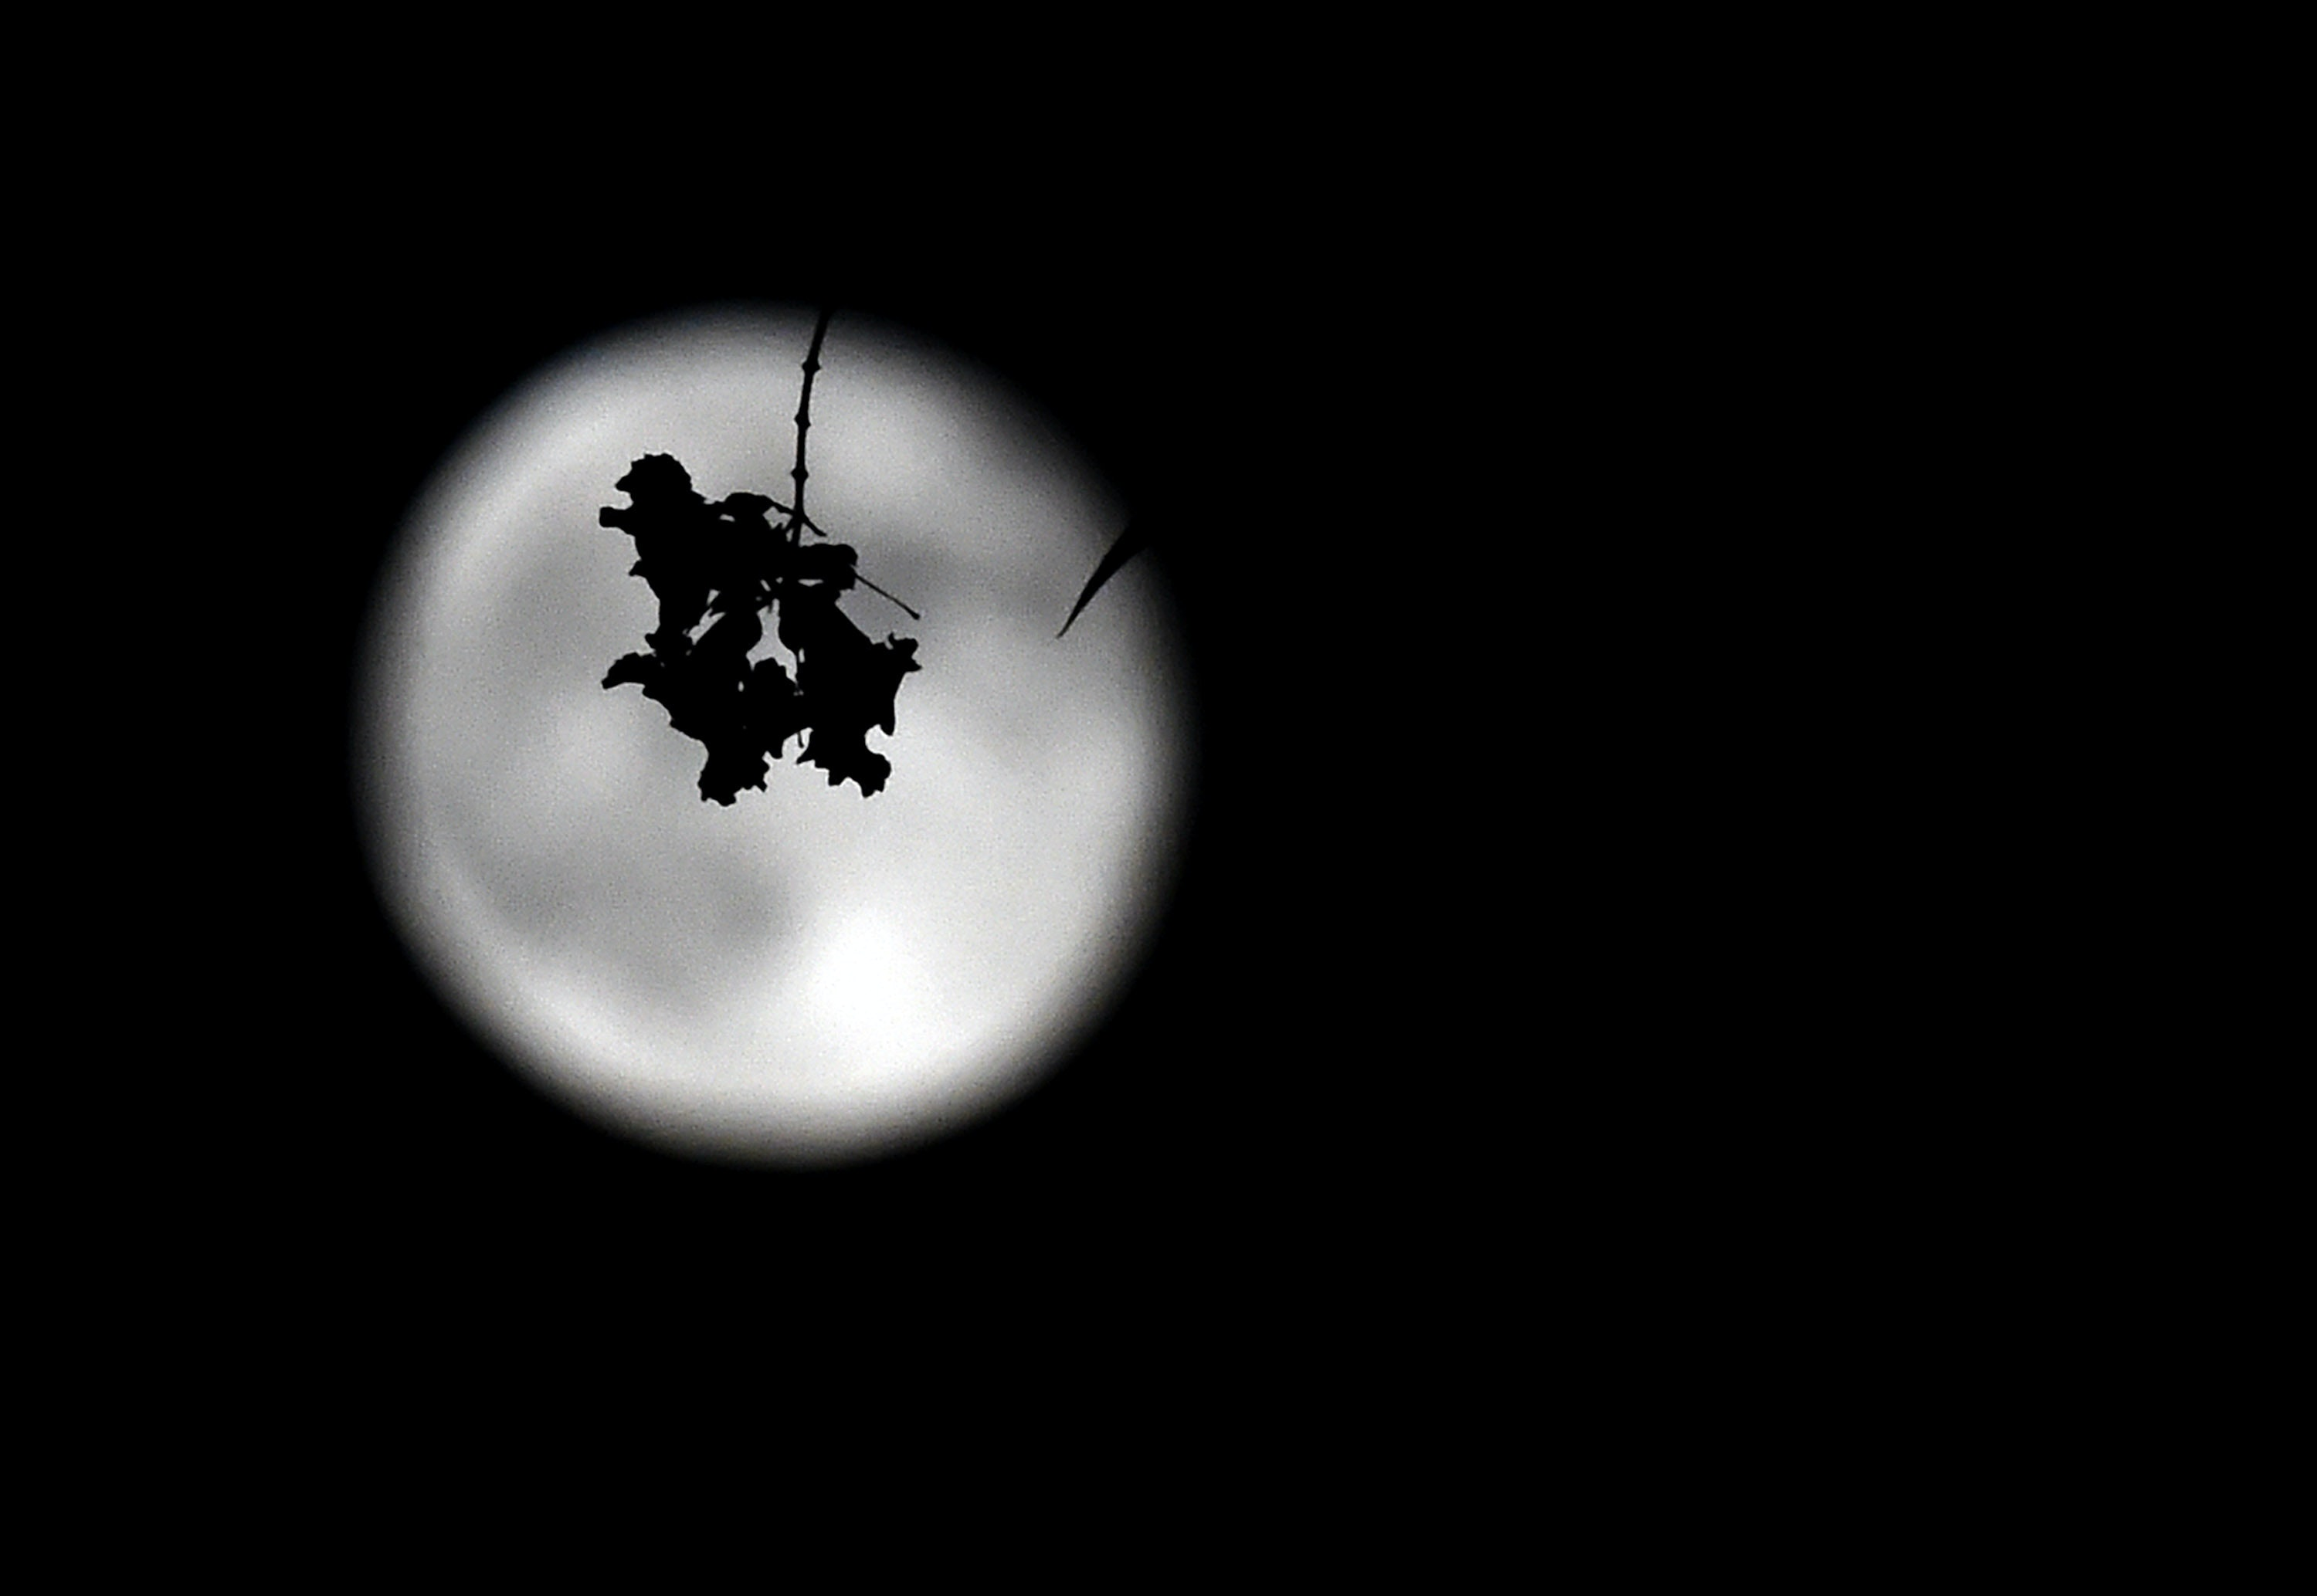 What Does It Mean If The Full Moon Is In Sagittarius? The May 2018